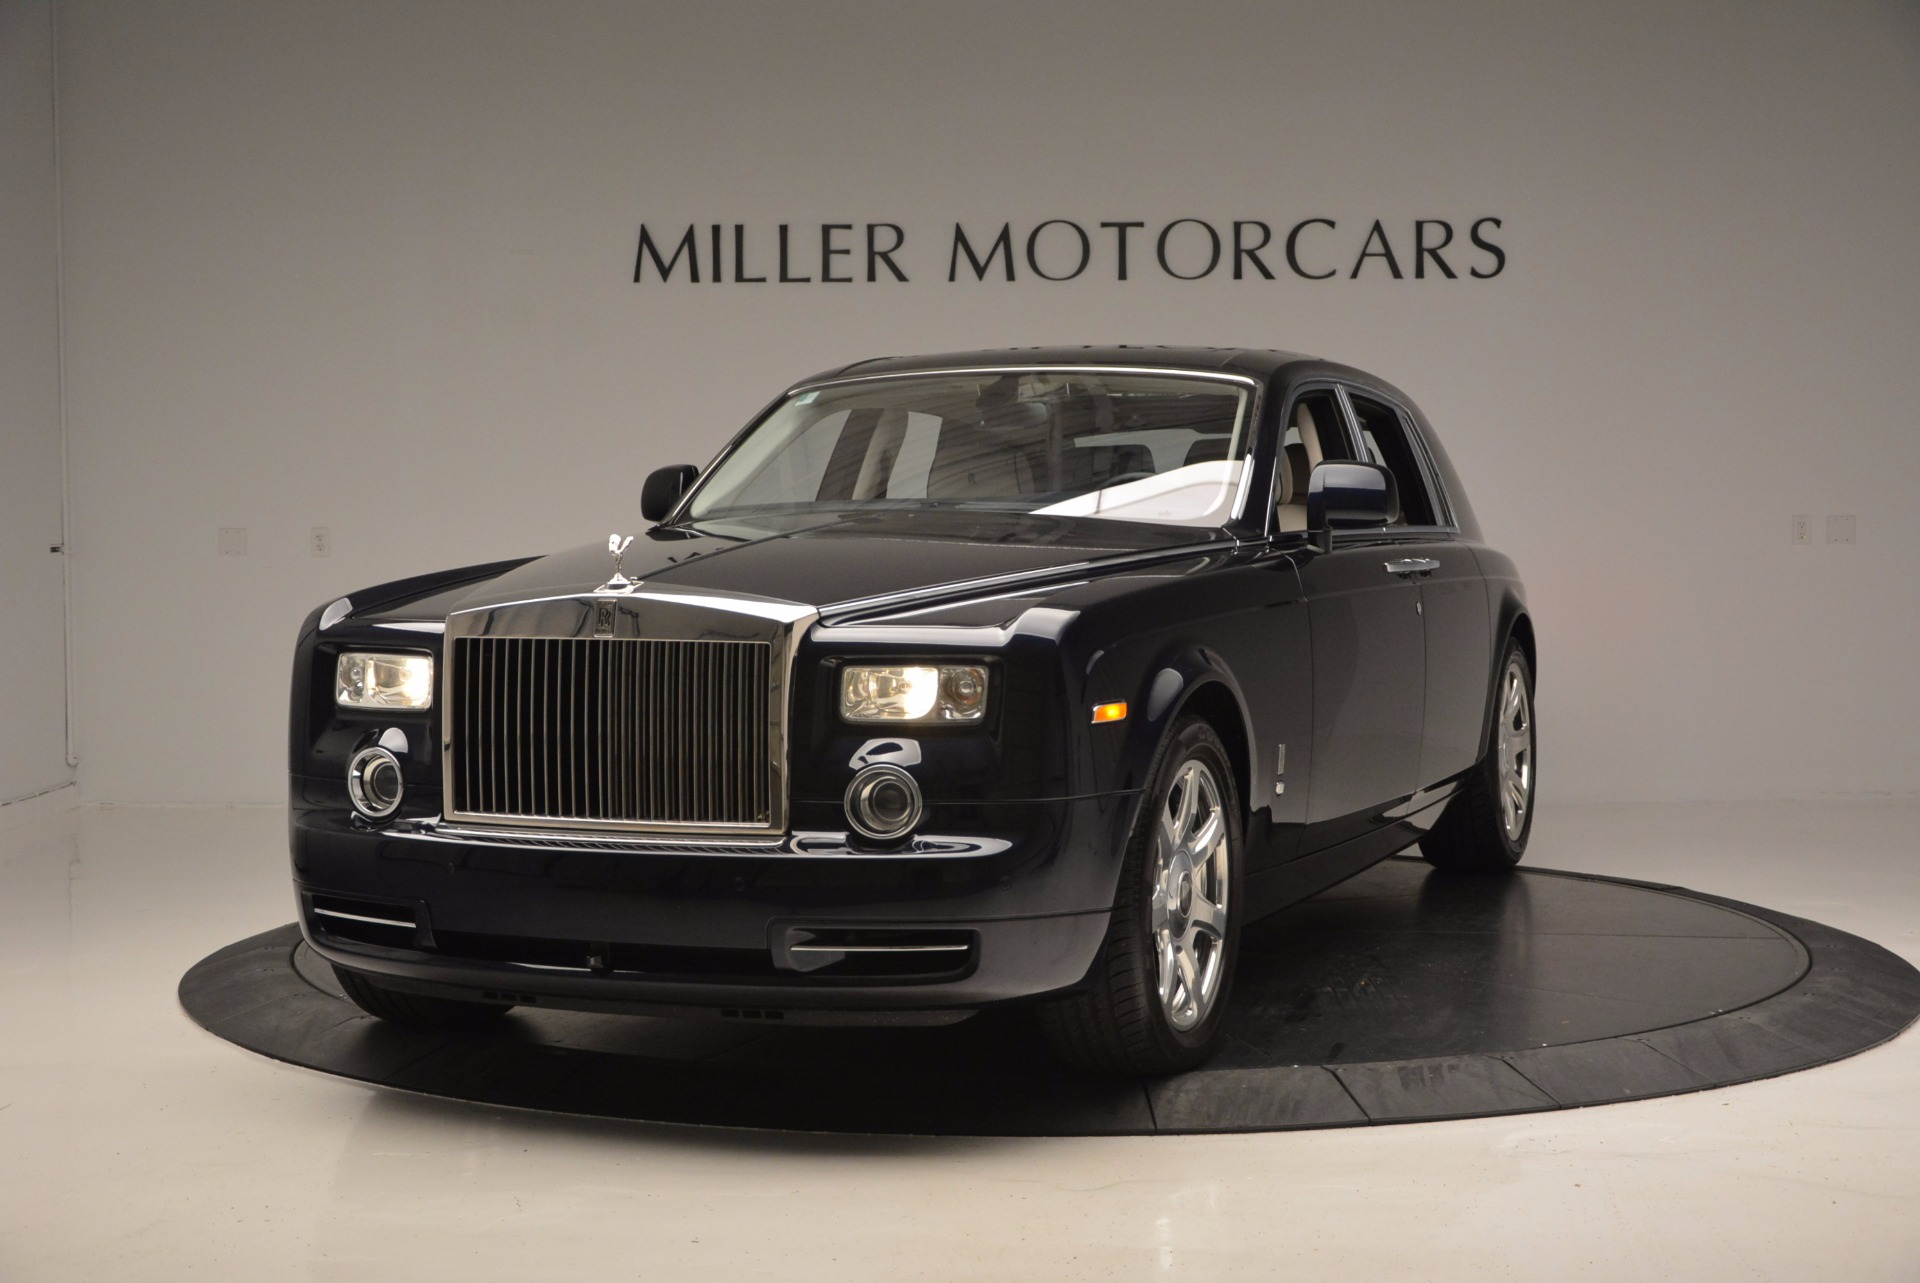 Used 2011 Rolls-Royce Phantom for sale Sold at Aston Martin of Greenwich in Greenwich CT 06830 1